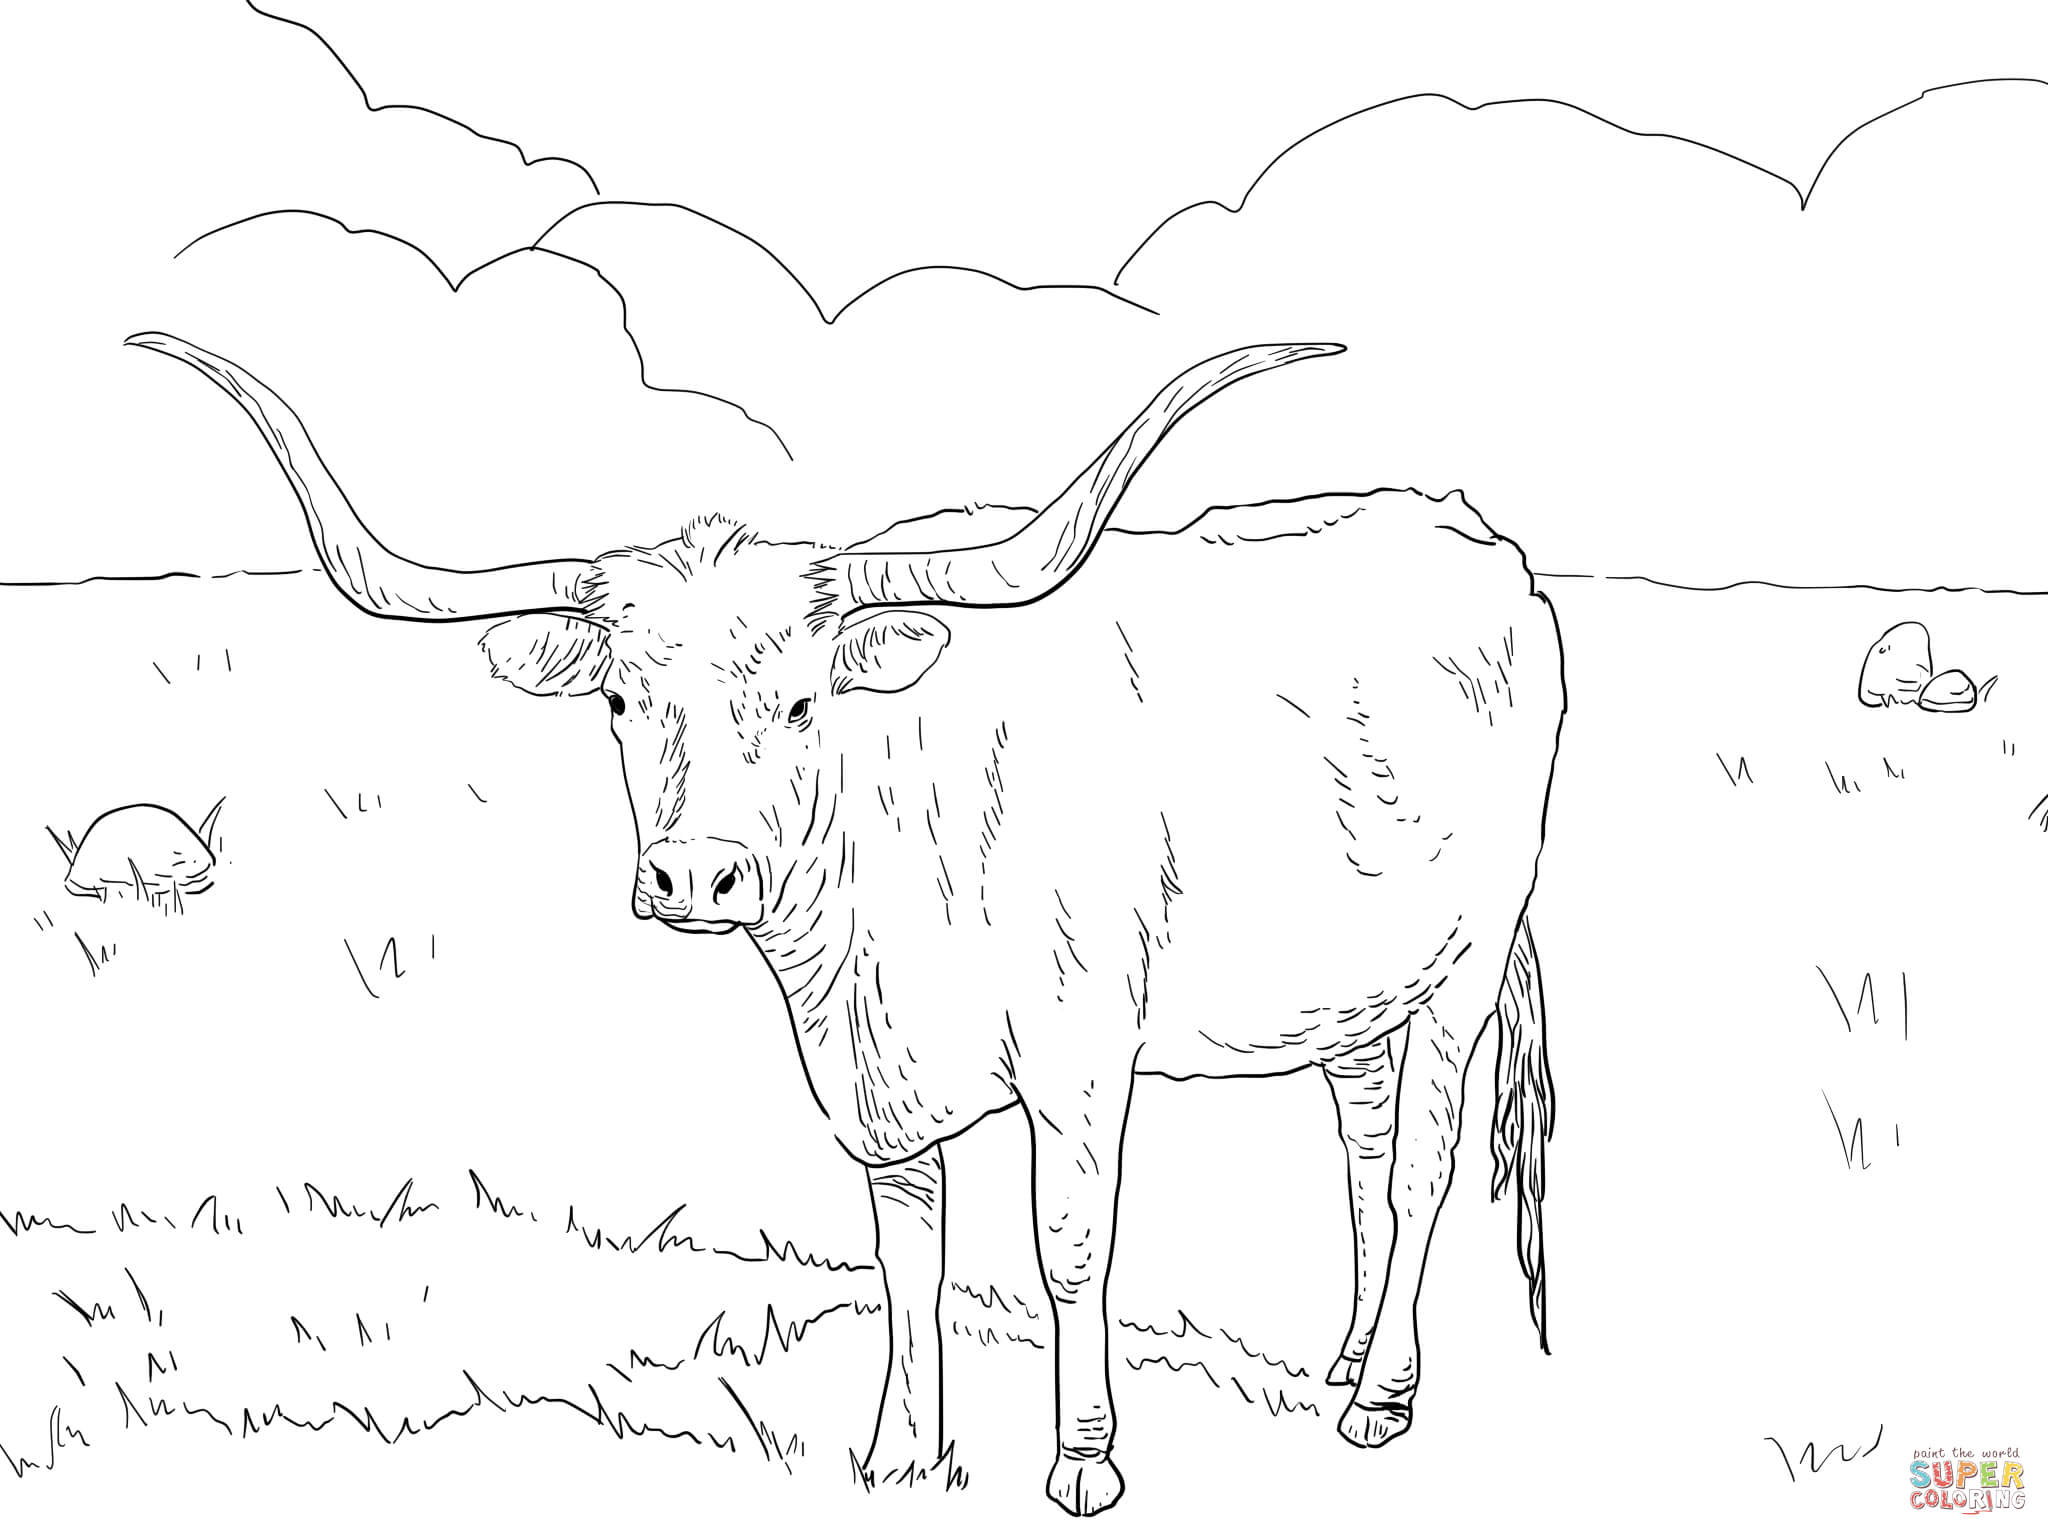 texas longhorns coloring pages 34 texas longhorns coloring pages zsksydny coloring pages texas pages coloring longhorns